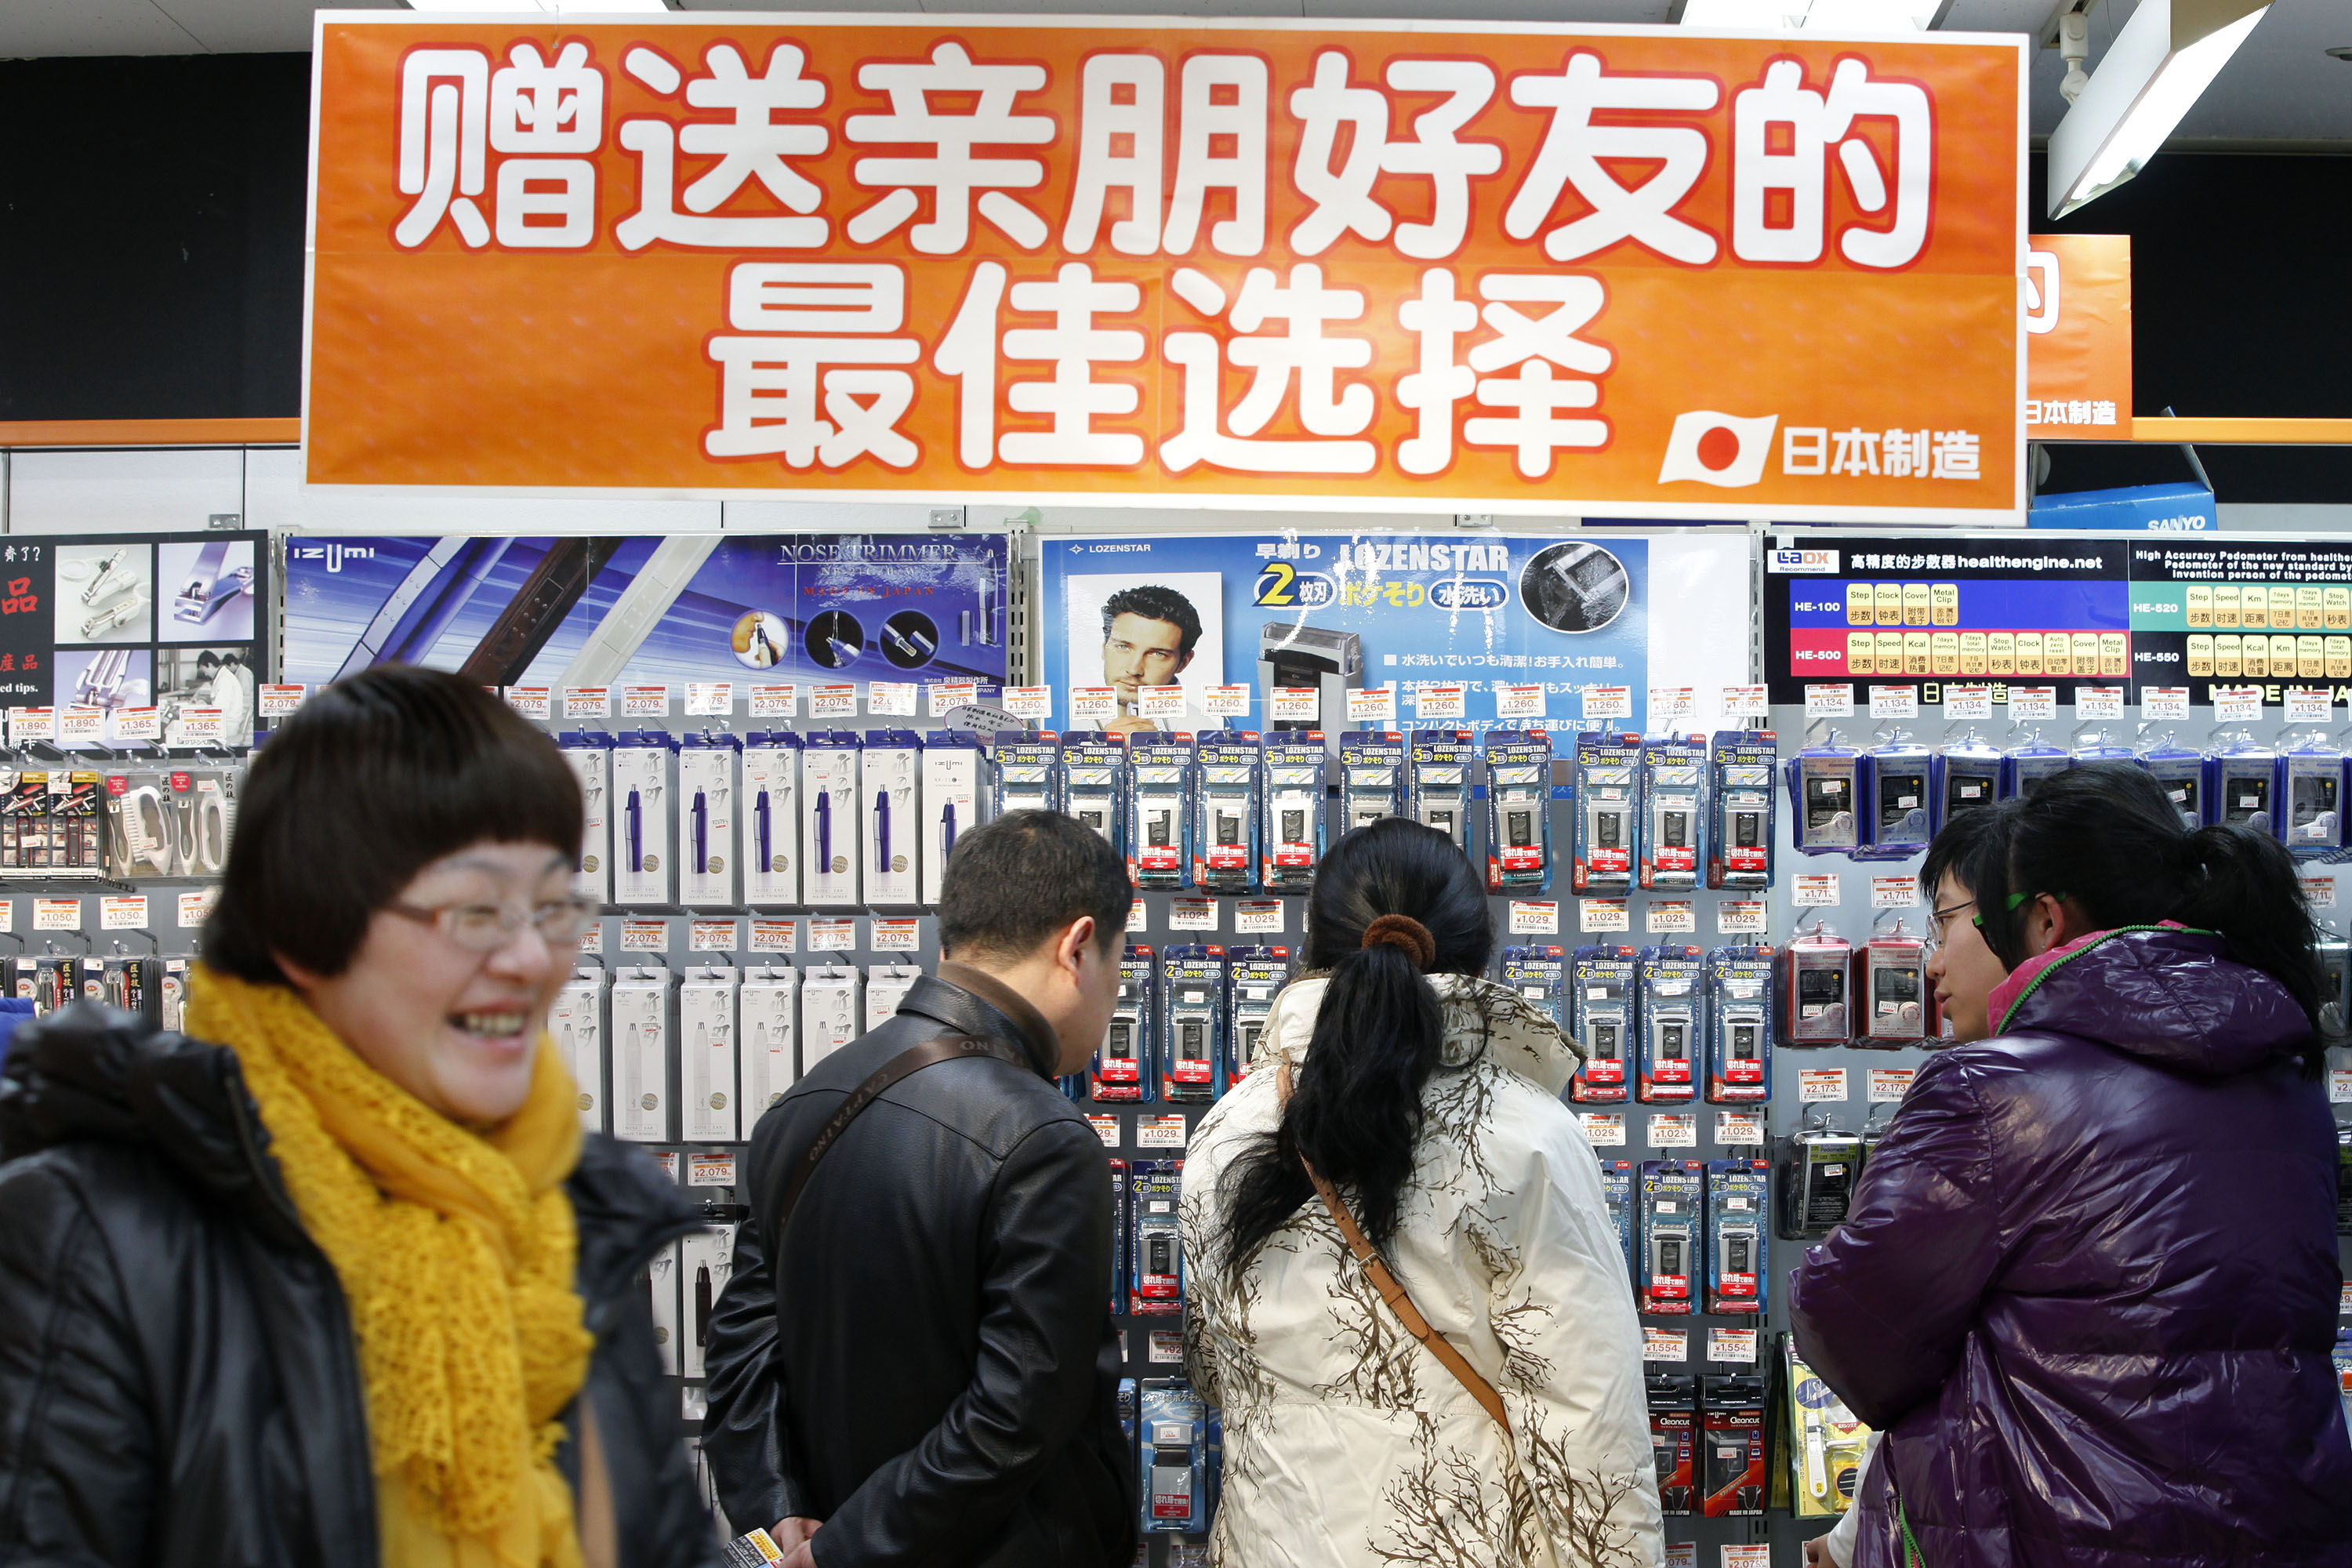 Chinese tourists browse through a Laox electronics store in Tokyo's Akihabara district on Jan. 23, 2012. | BLOOMBERG